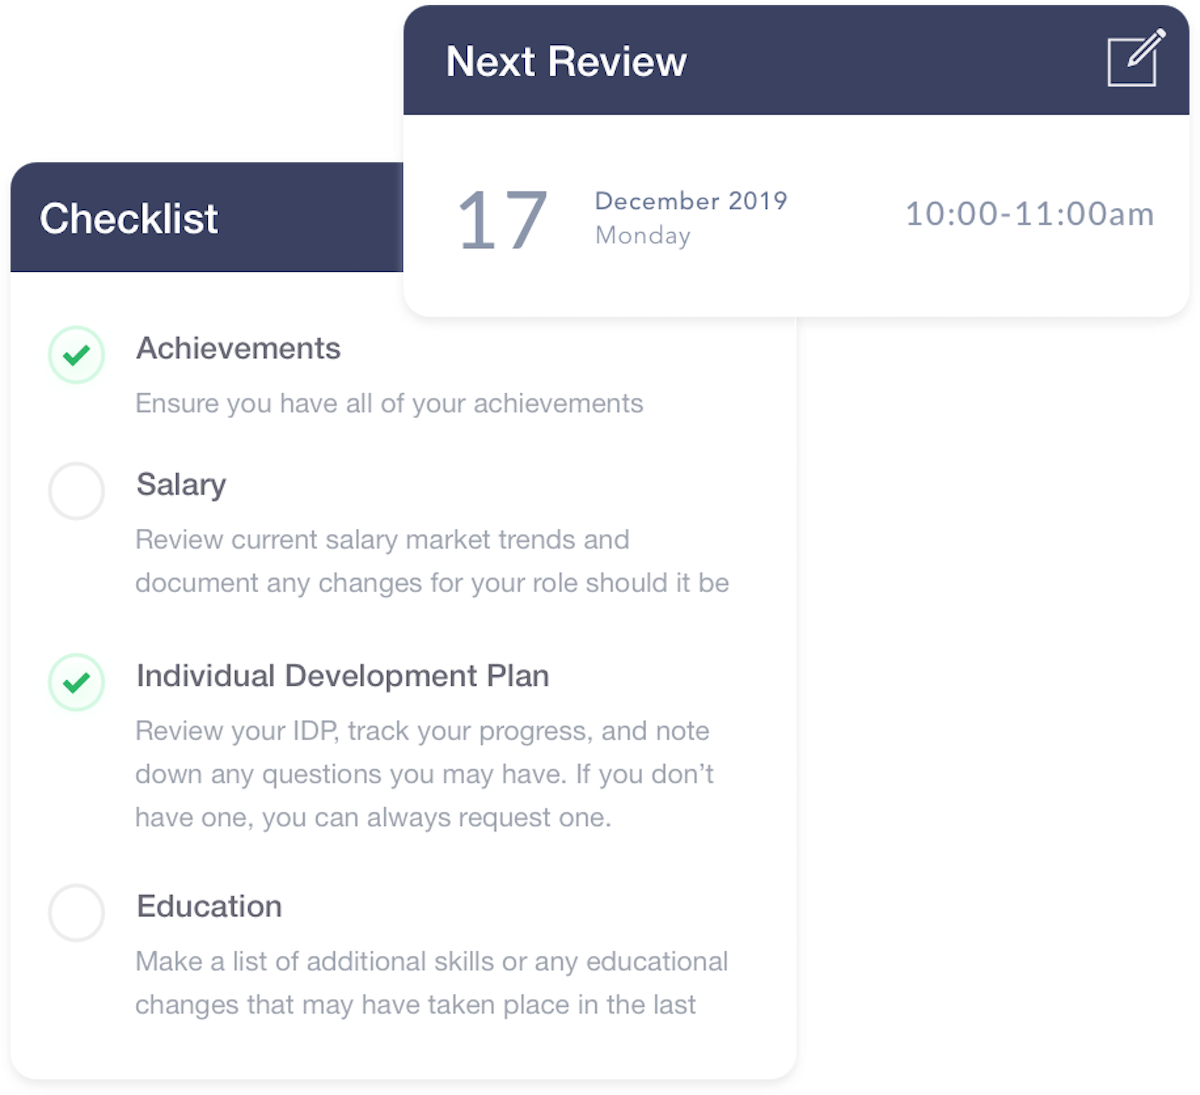 Clarify - Beat your performance review